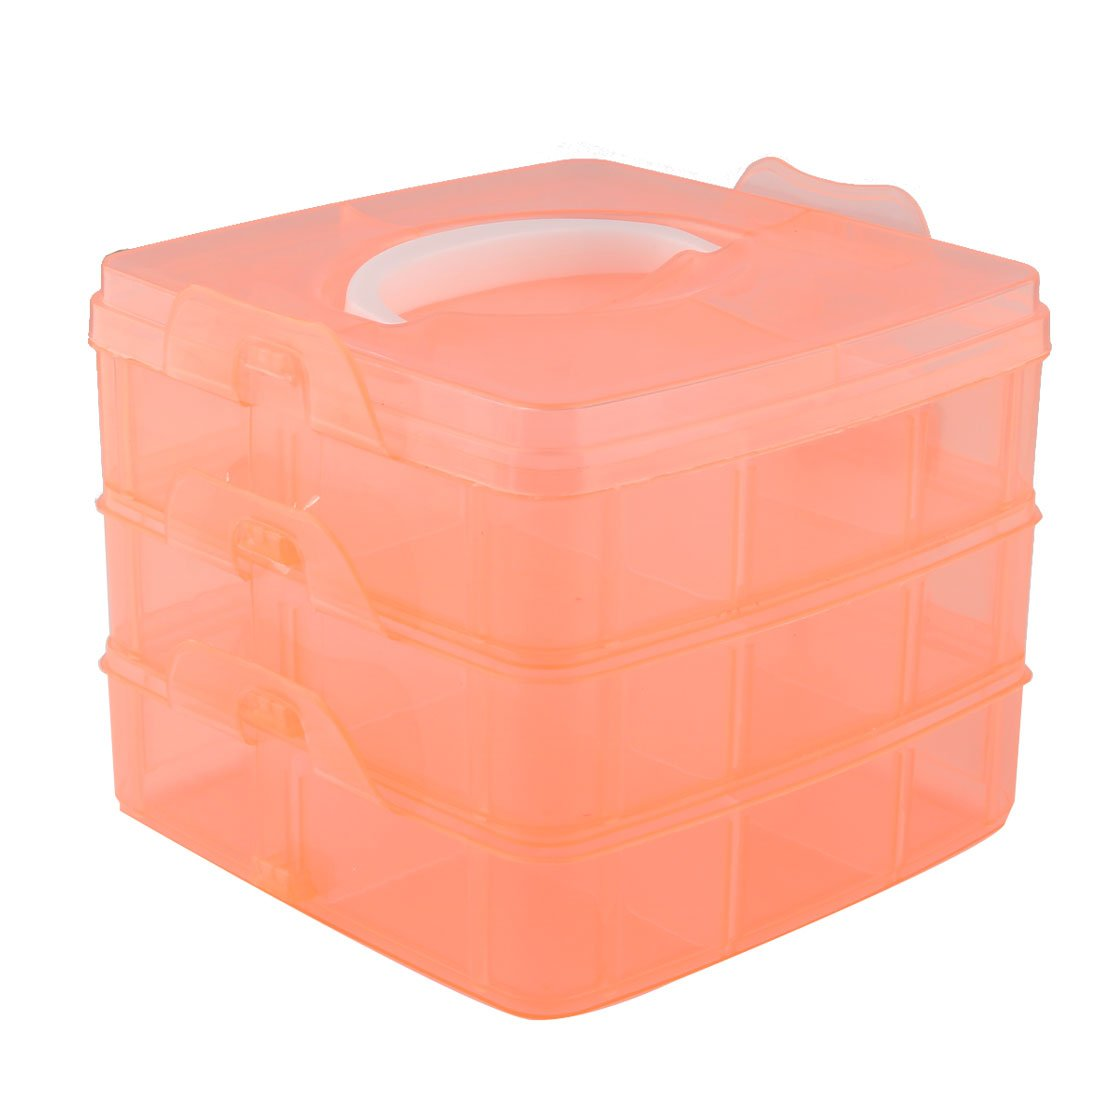 uxcell Plastic Home 18 Compartments Adjustable Cosmetic Jewelry Organzier Box Case Orange